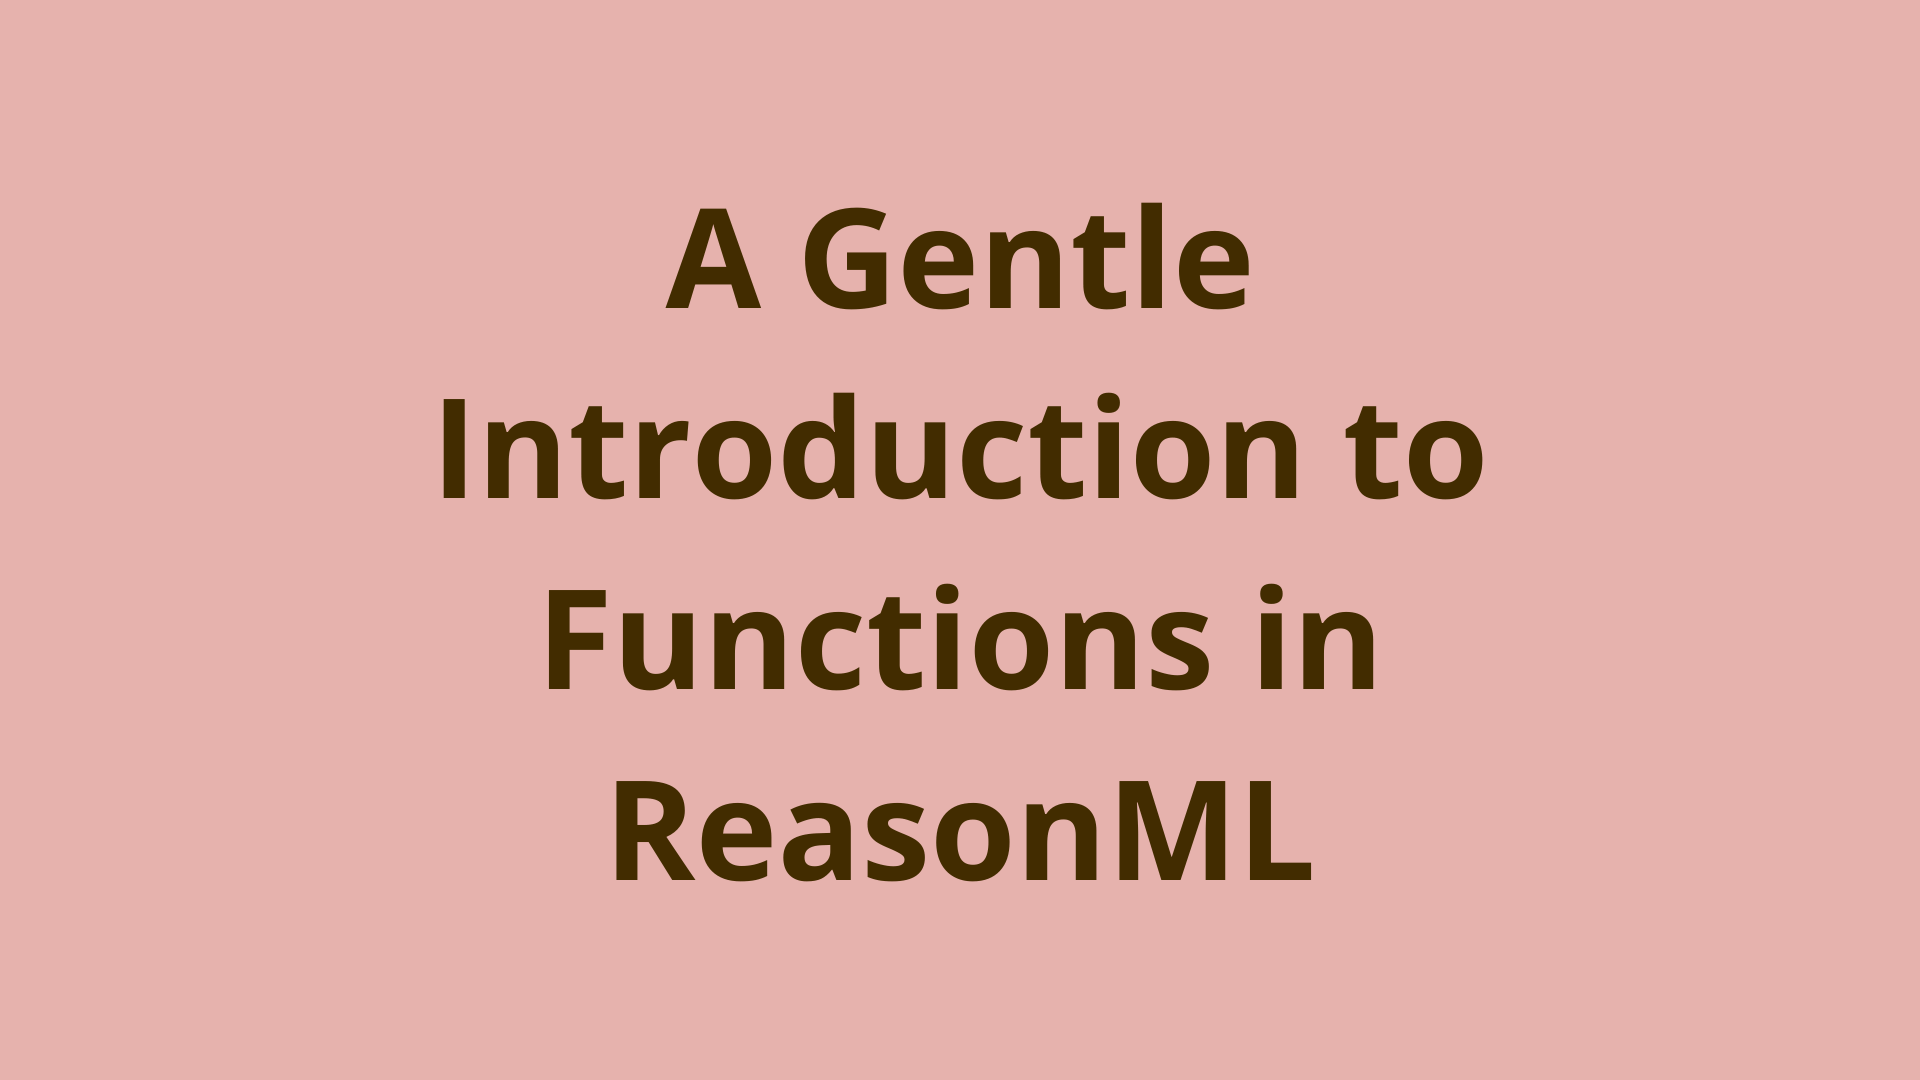 Image of A gentle introduction to functions in ReasonML